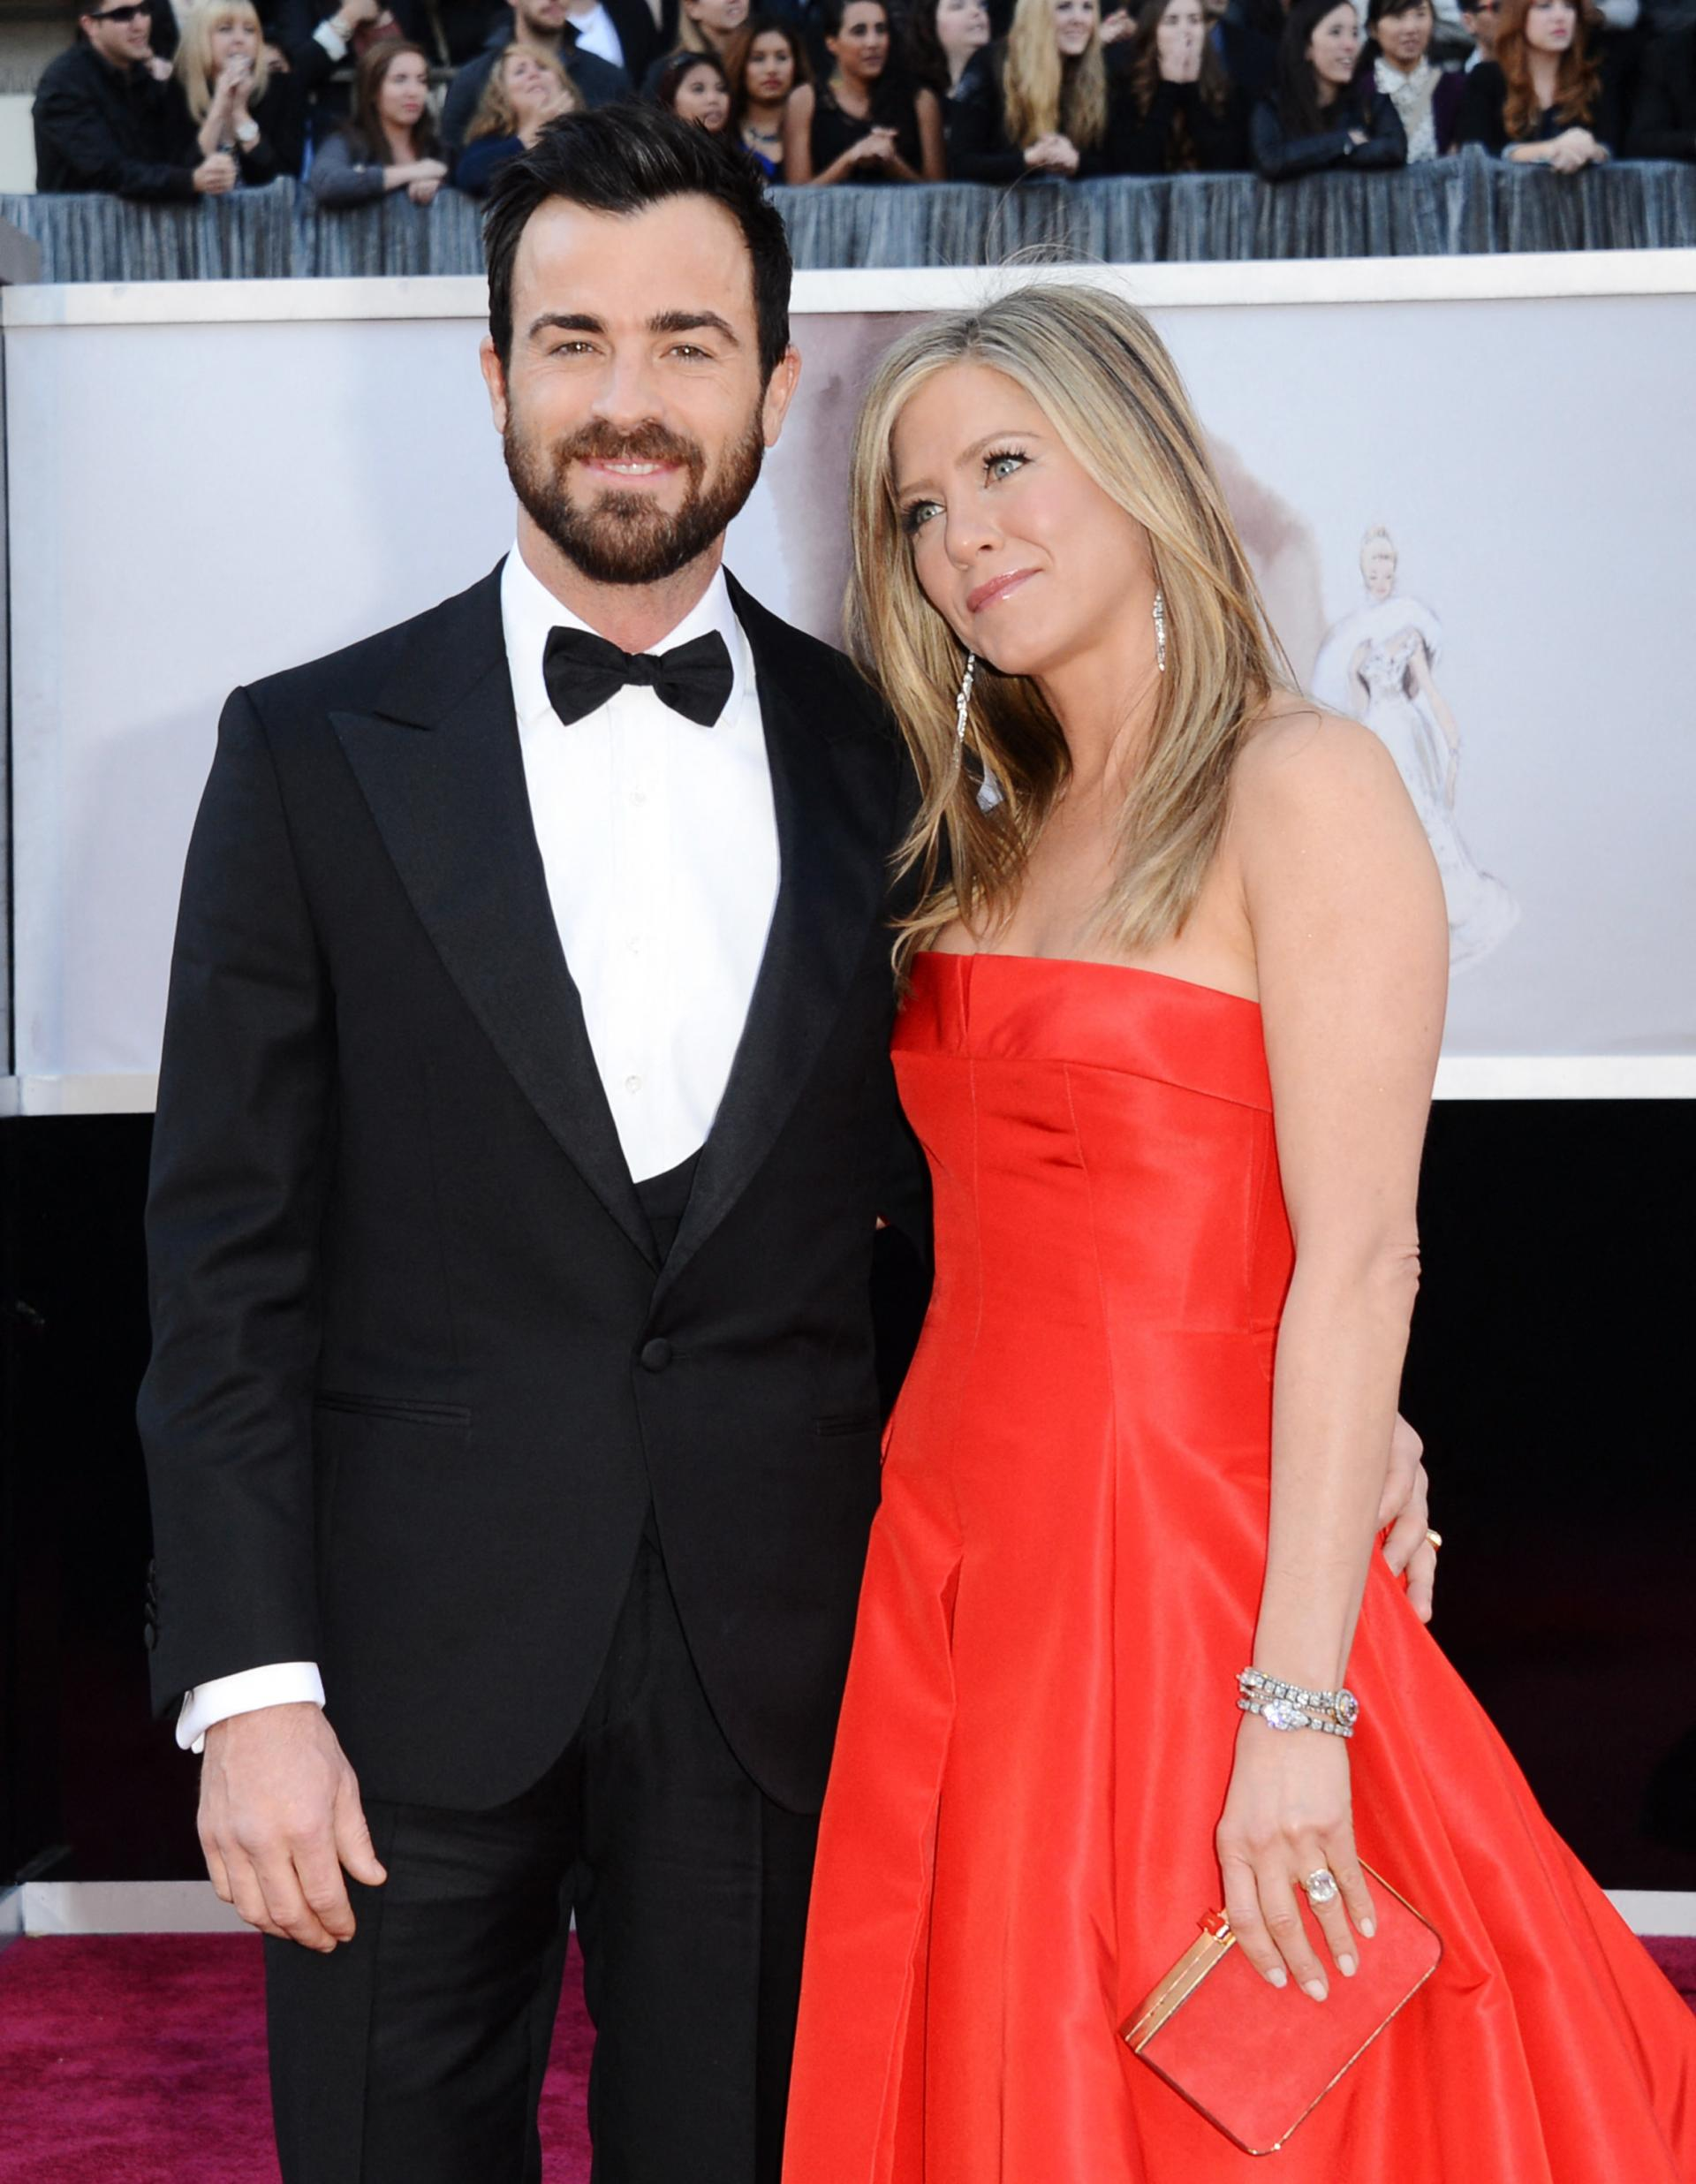 Jennifer Aniston's ex-husband Justin Theroux reveals what annoyed him most about marriage